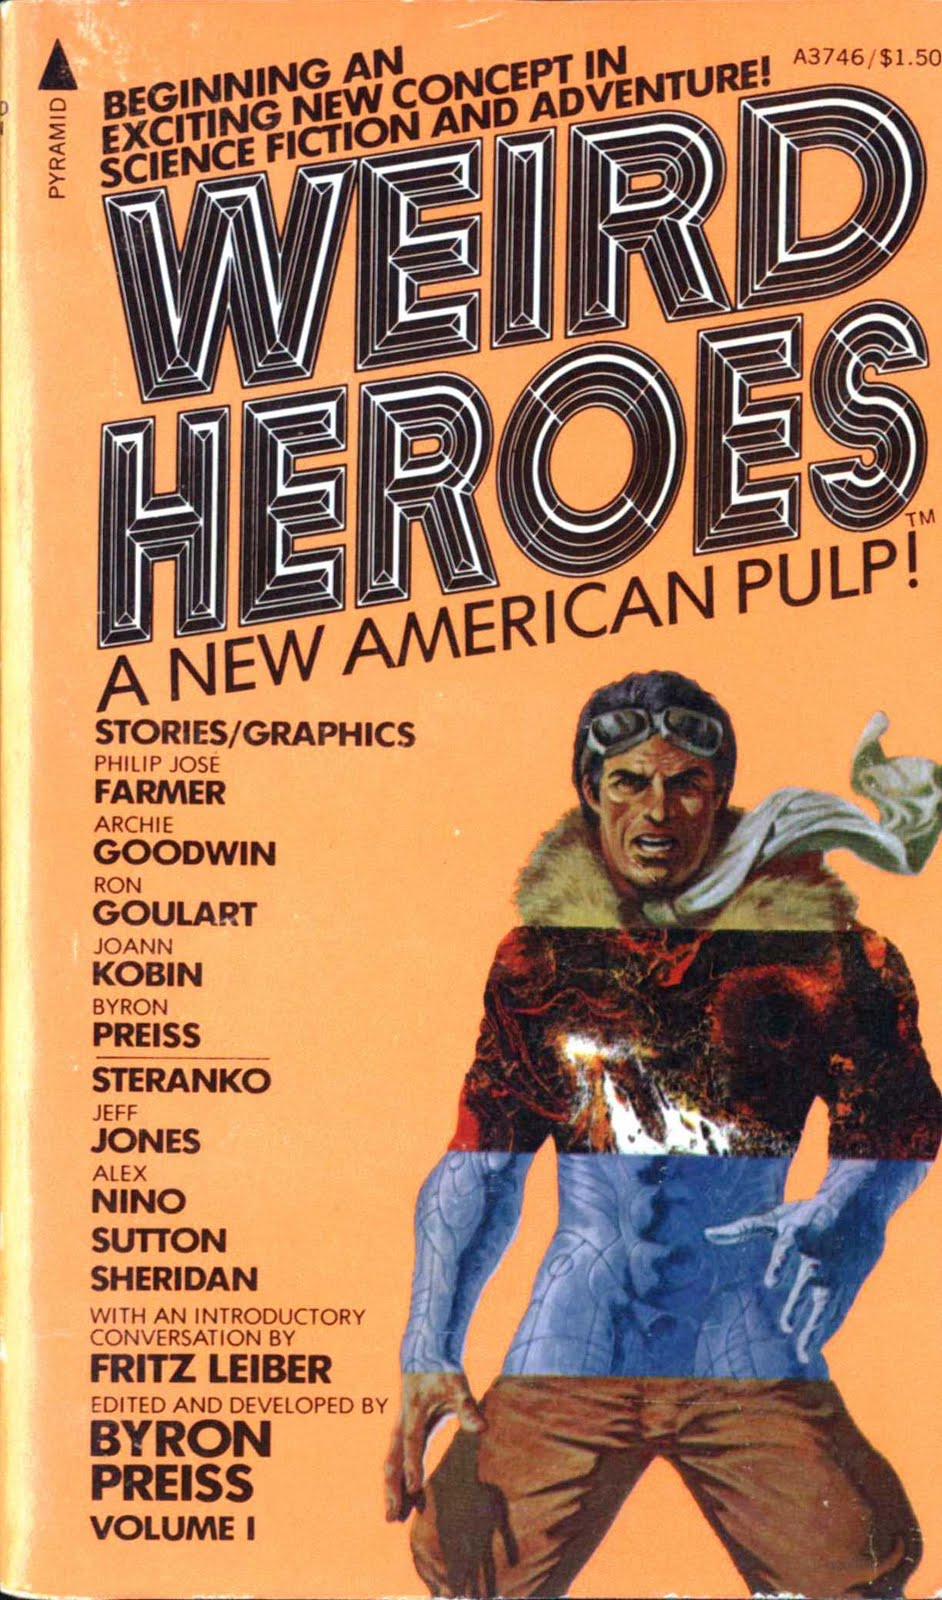 WEIRD HEROES VOLUME 1 Editied & Developed by Byron Preiss!